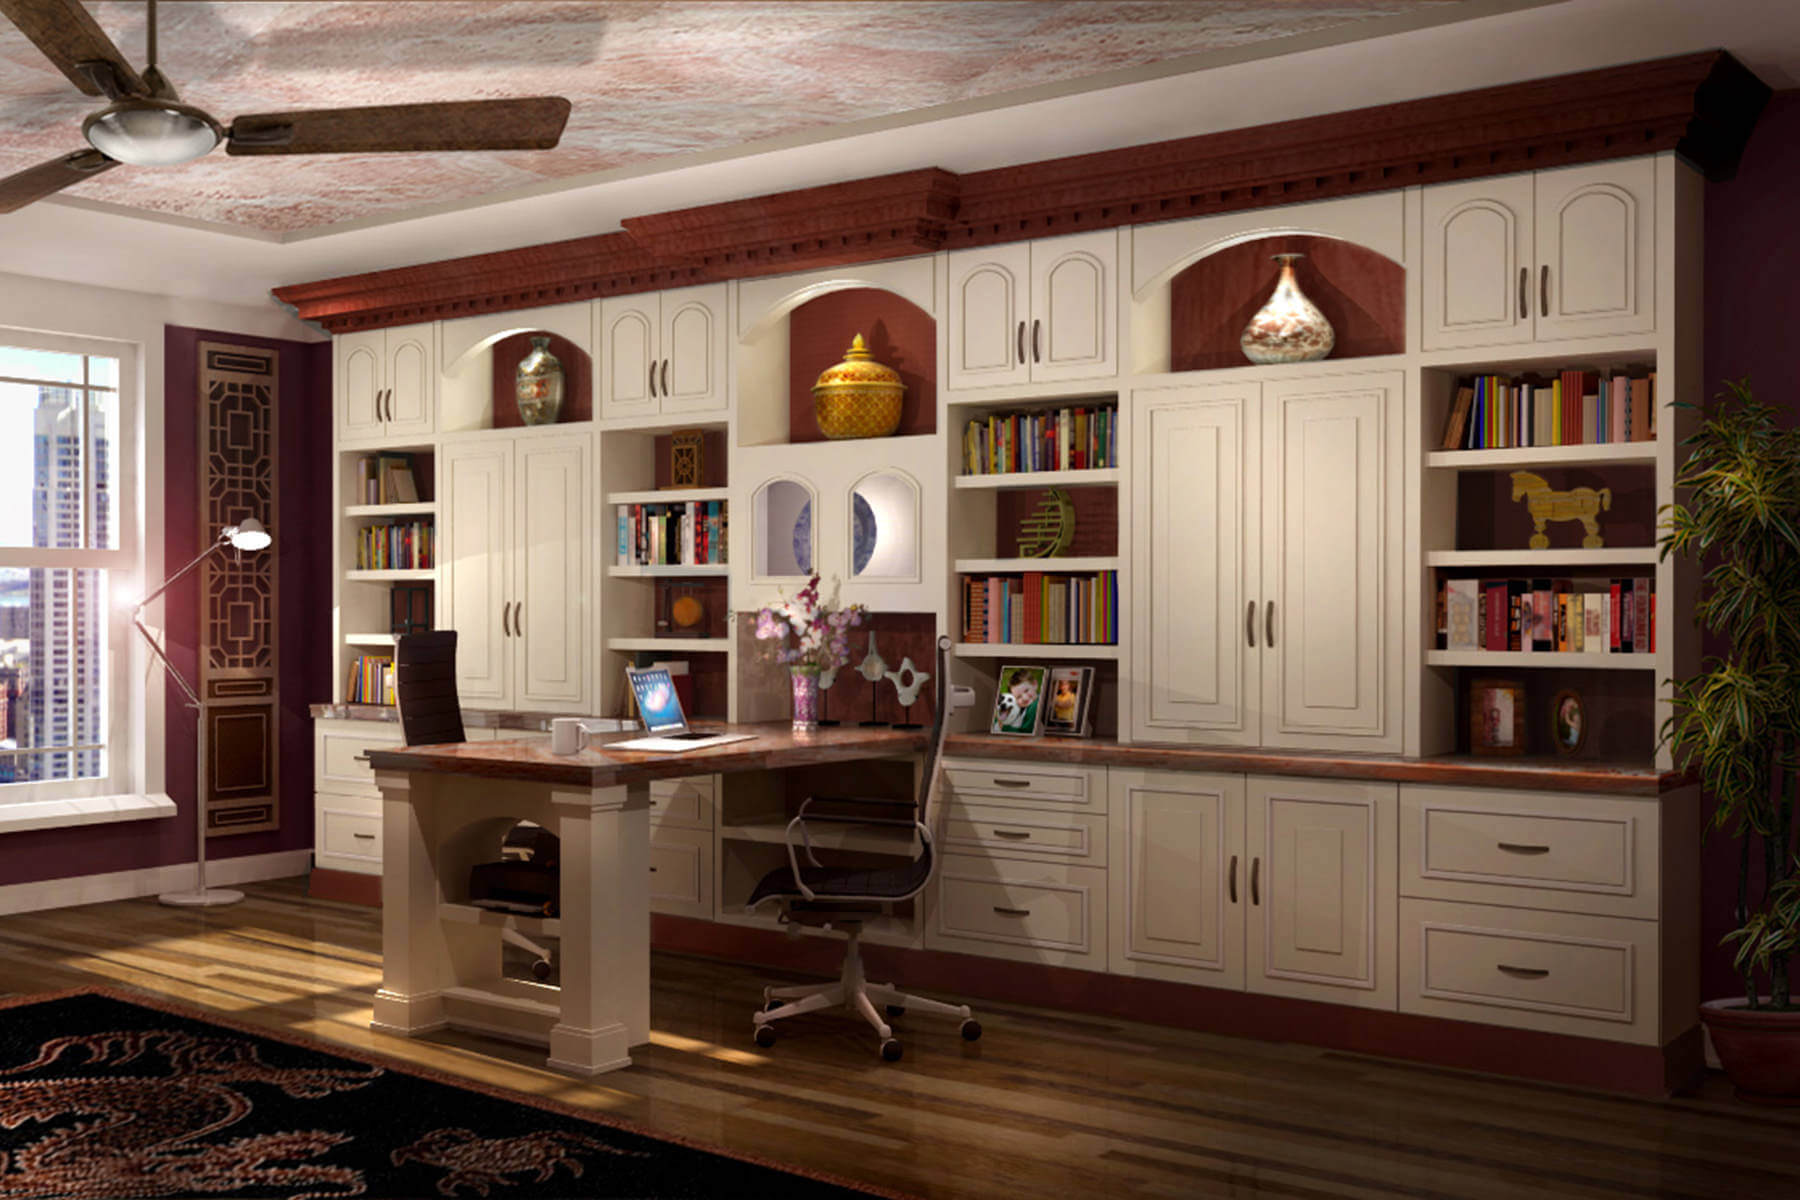 Office Storage Units 26 Home Office Designs Desks And Shelving By Closet Factory